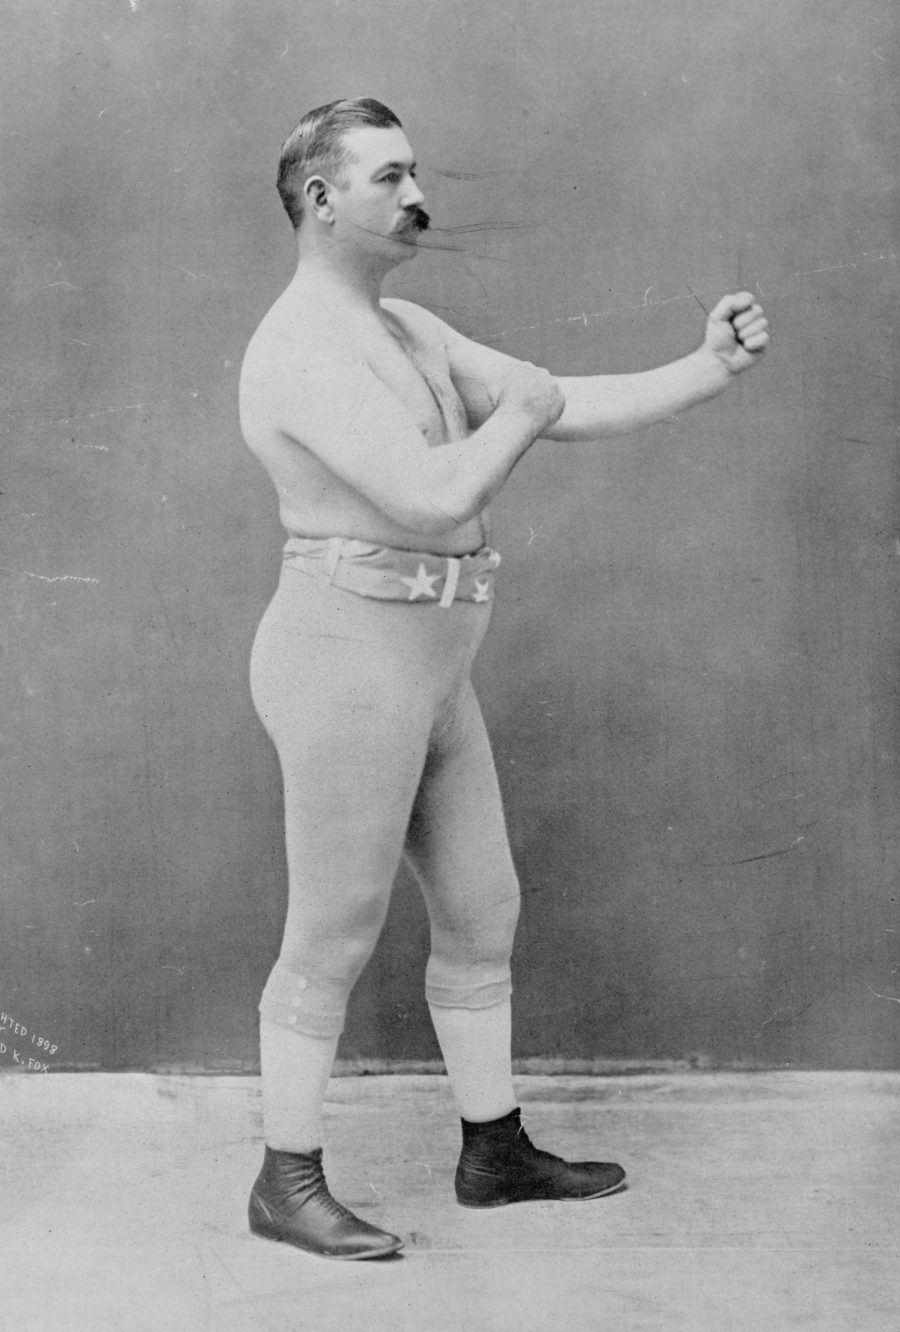 John L. Sullivan standing posing for the camera